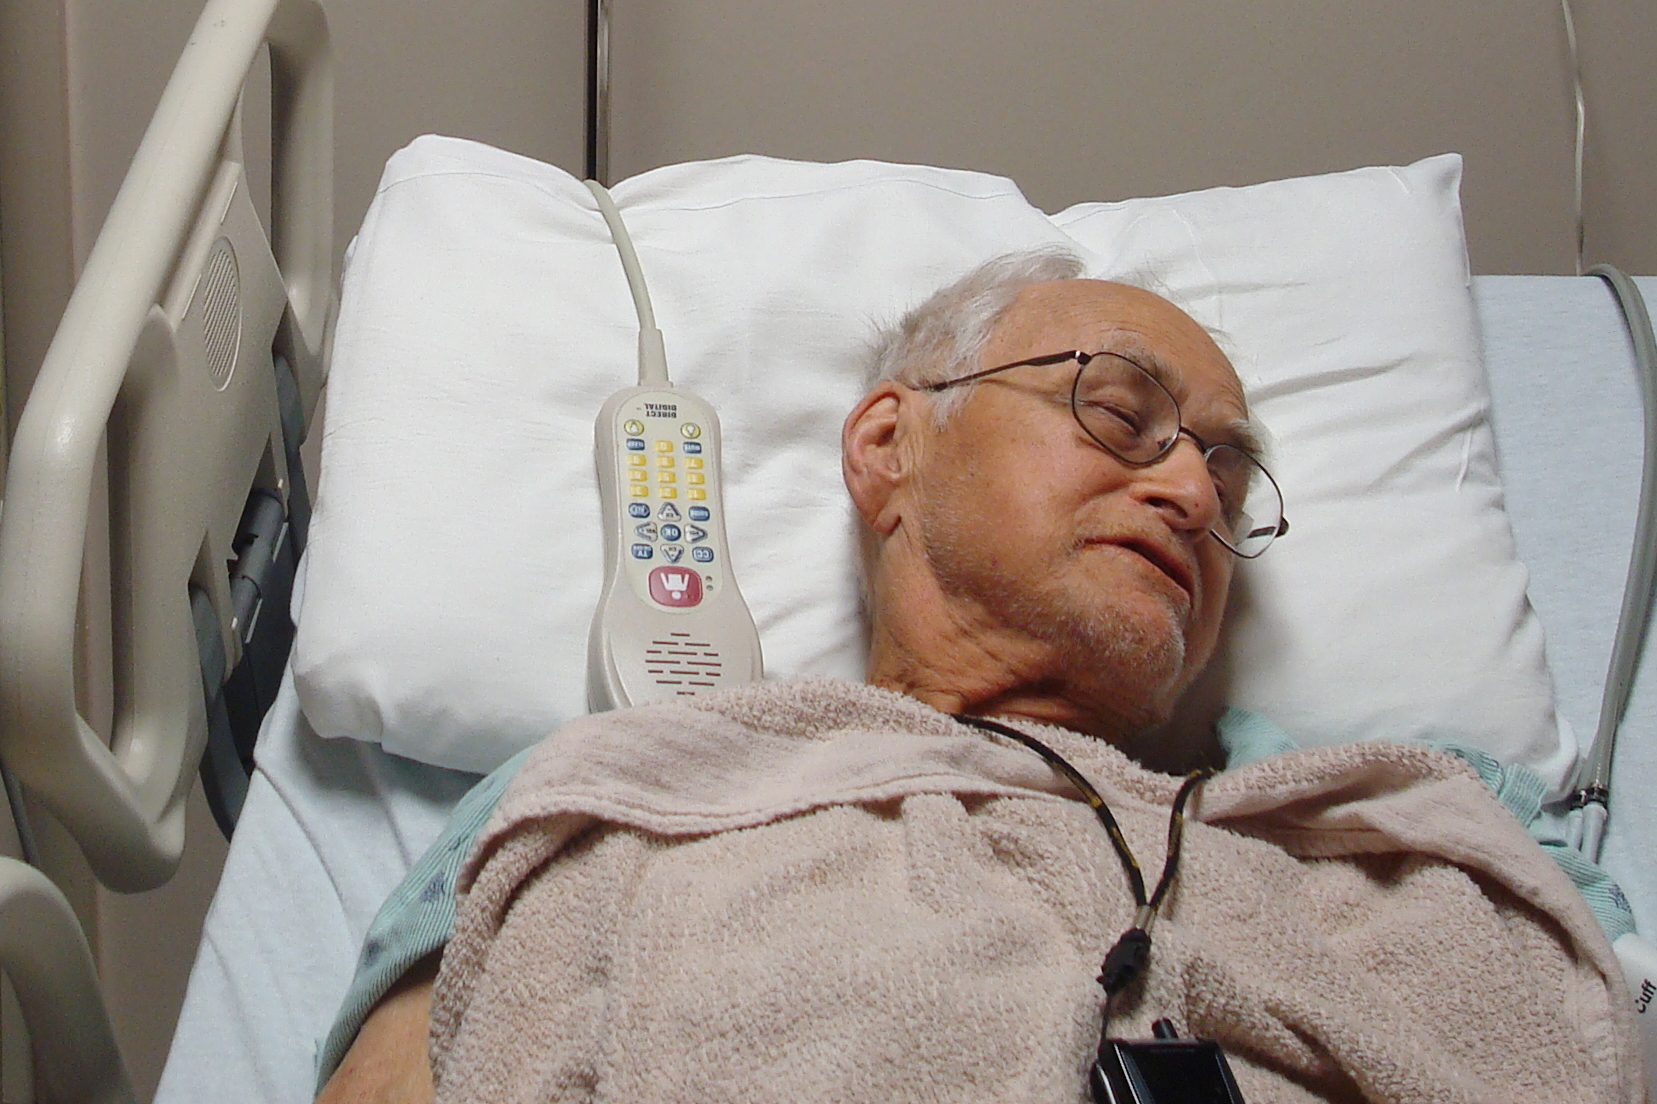 web-man-hospital-bed-elderly-anique-cc